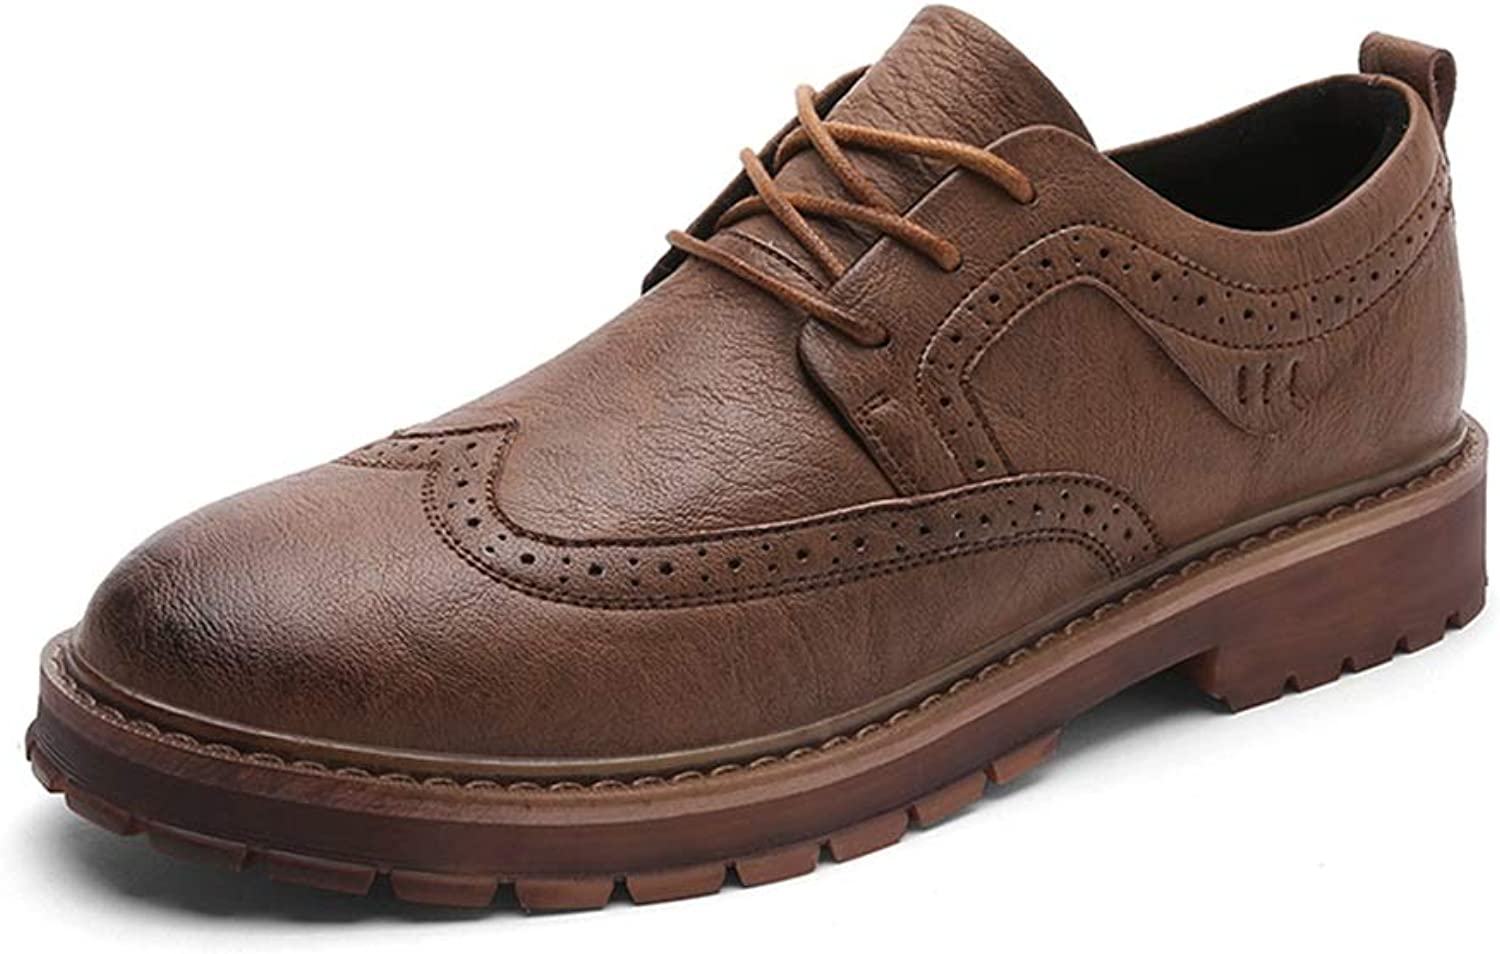 XHD-Men's shoes Men's Simple Fashion Oxford Casual Classic Carving Lace Up Retro Brogue shoes